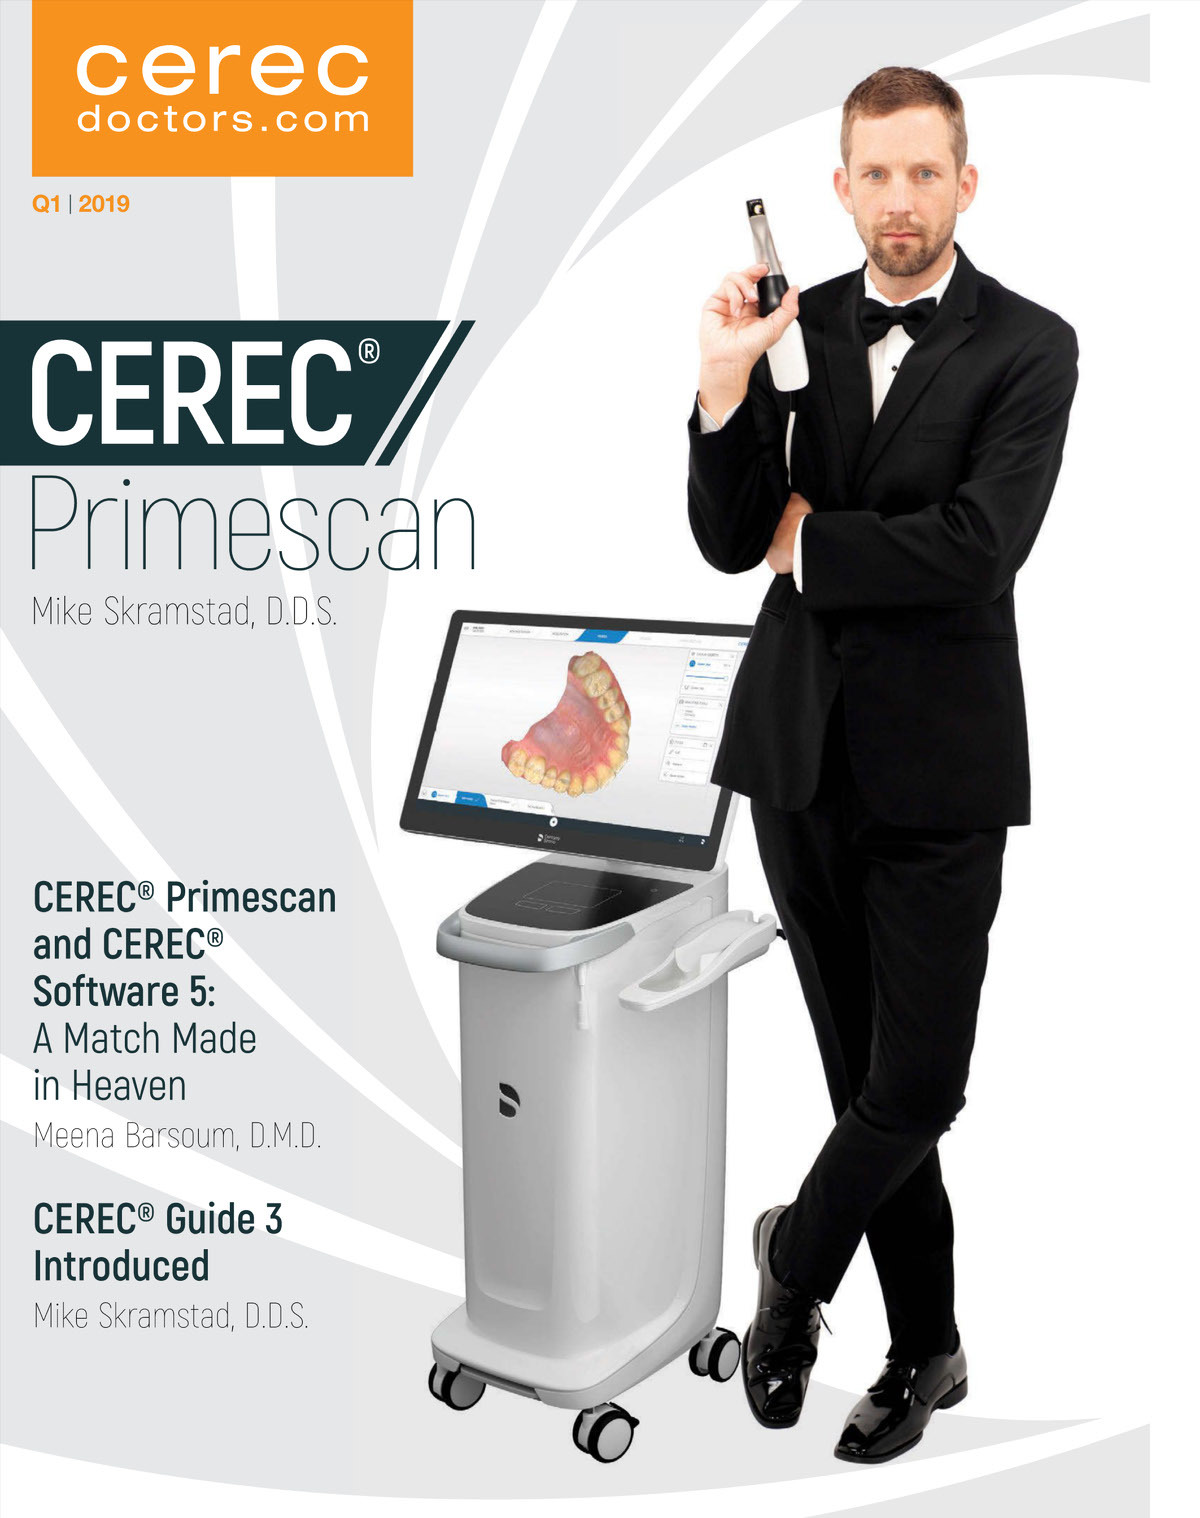 CEREC Magazine - Q1 2019